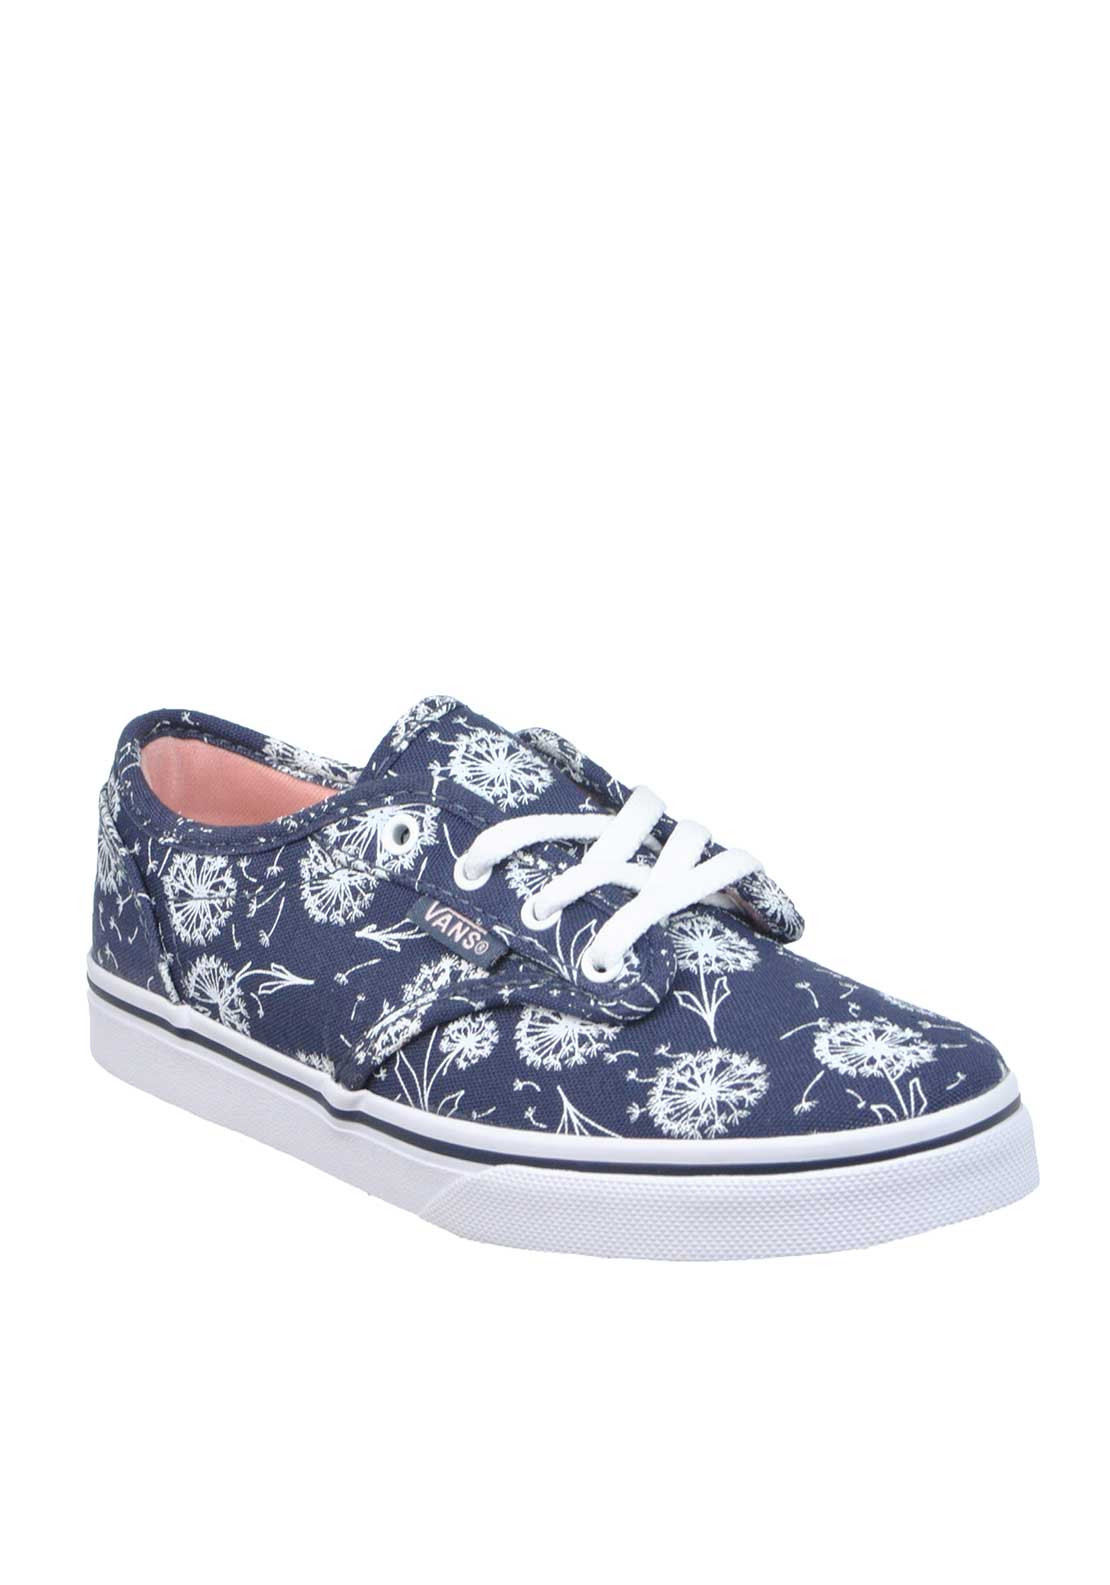 Vans Girls Dandelion Atwood Trainers, Navy